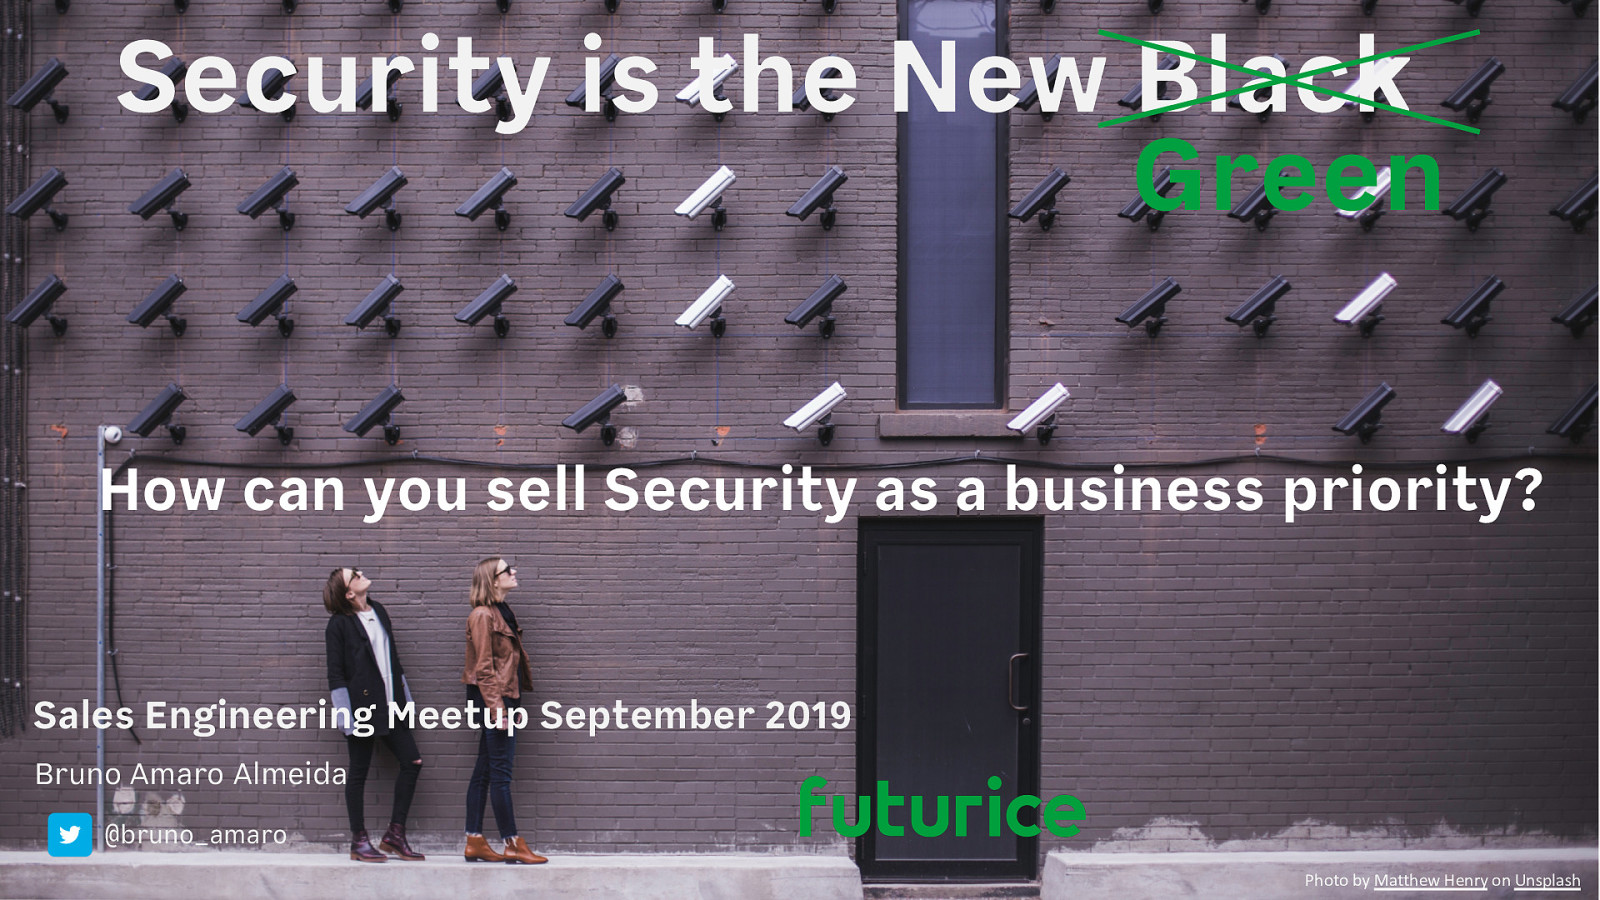 How can you sell Security as a business priority?